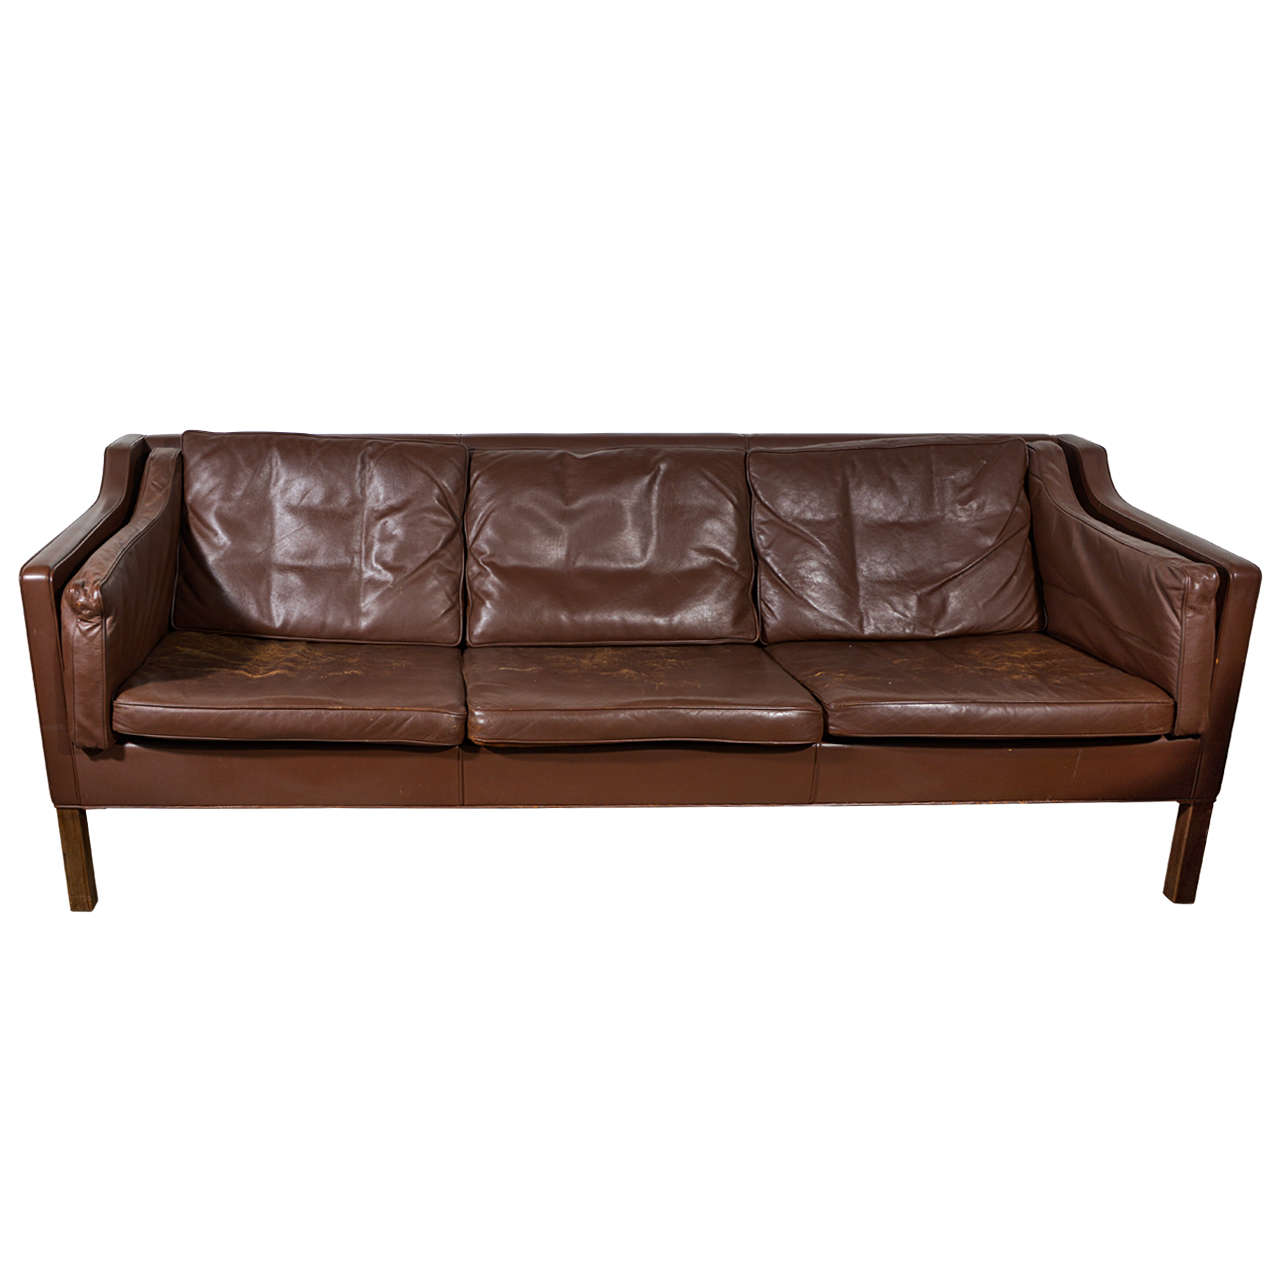 mogensen dark chocolate vintage leather sofa. Black Bedroom Furniture Sets. Home Design Ideas